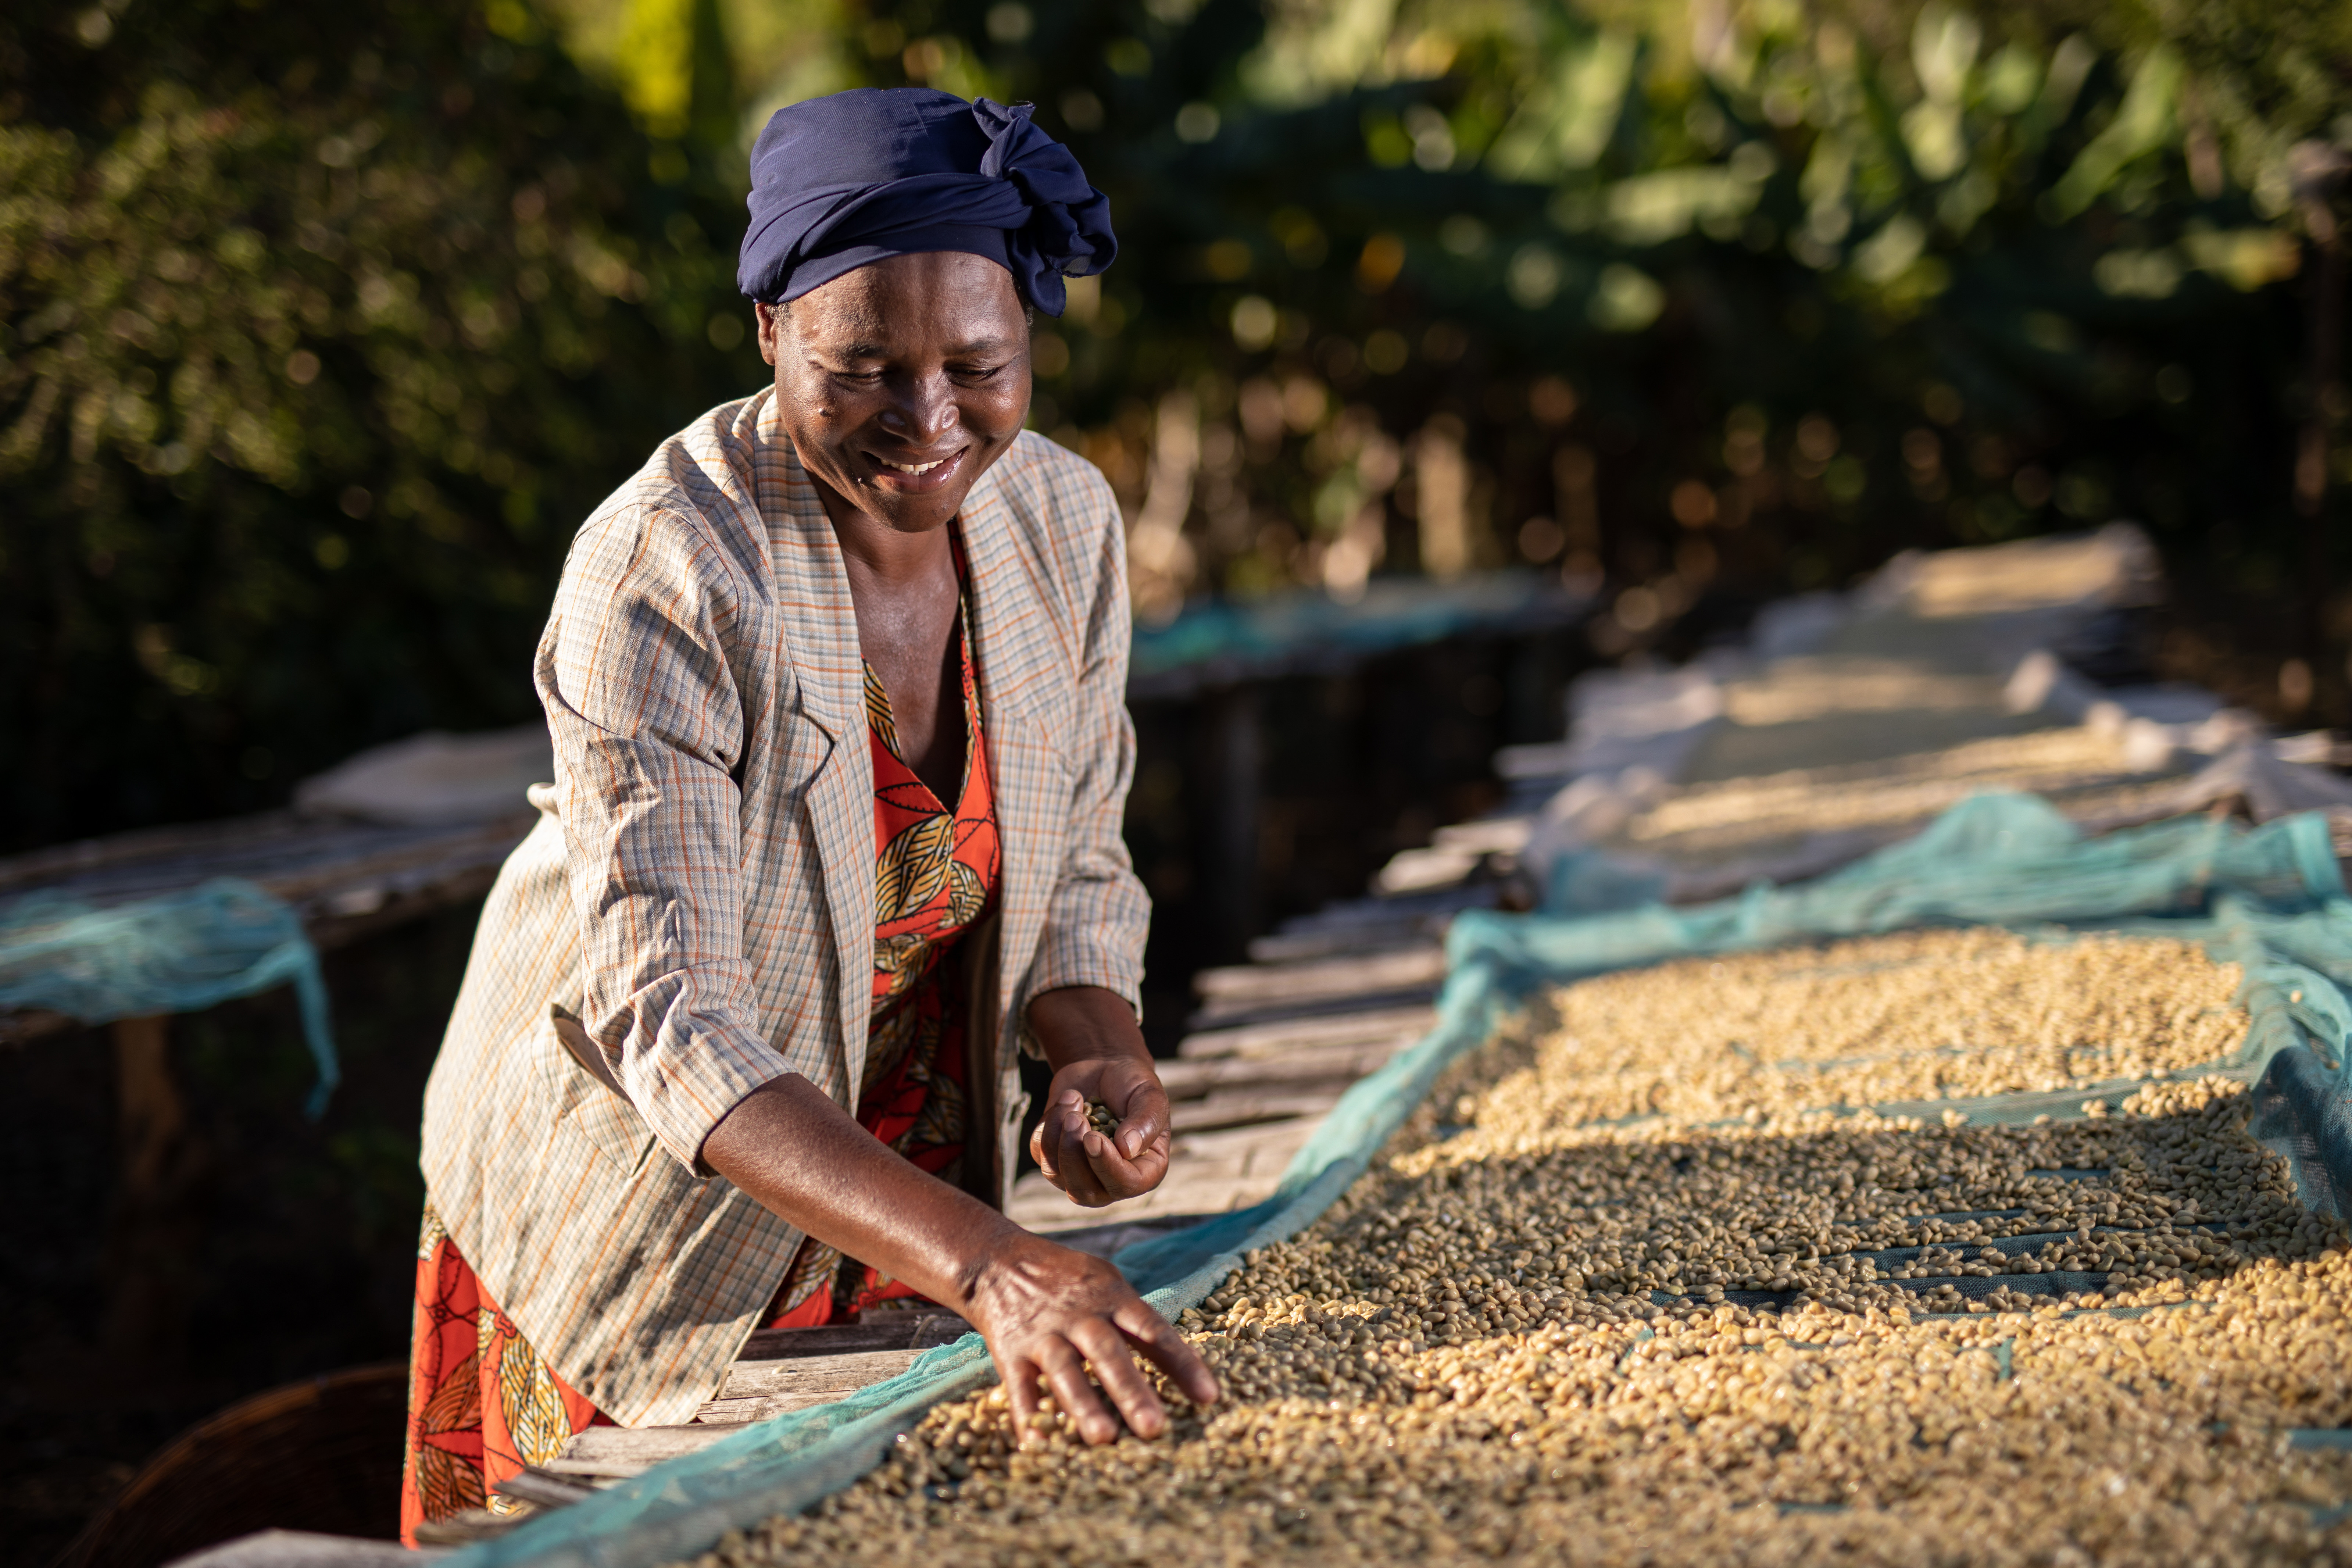 A farmer member of the AAA Academy, a fair trade program set up by Nespresso to revive coffee cultivation in Zimbabwe, is sorting coffee beans in a farm in the Honde Valley in eastern Zimbabwe, near the border with Mozambique, June 20, 2018.